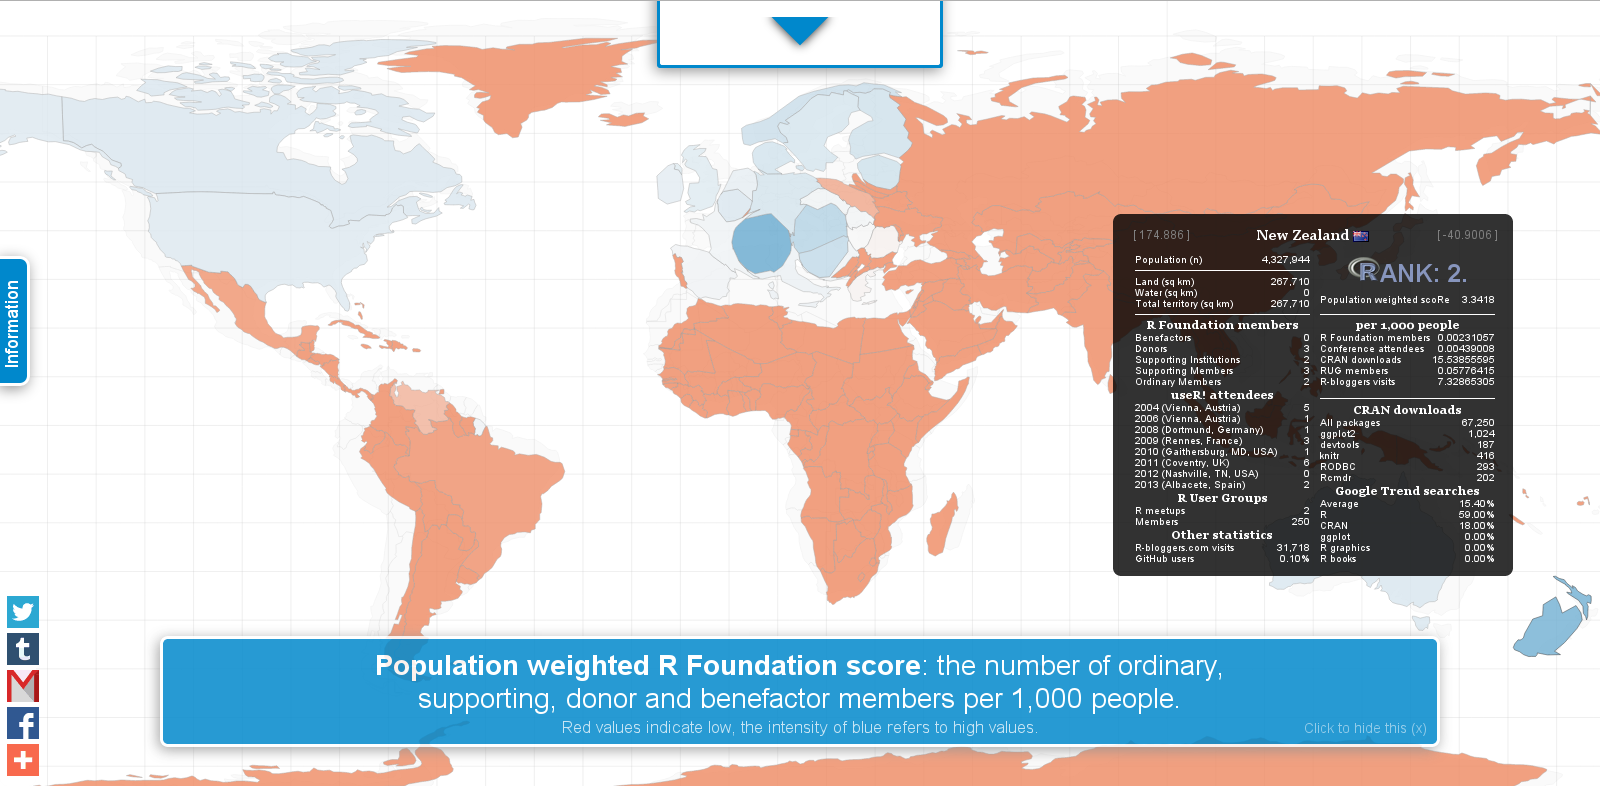 The number of R Foundation members per 1,000 persons